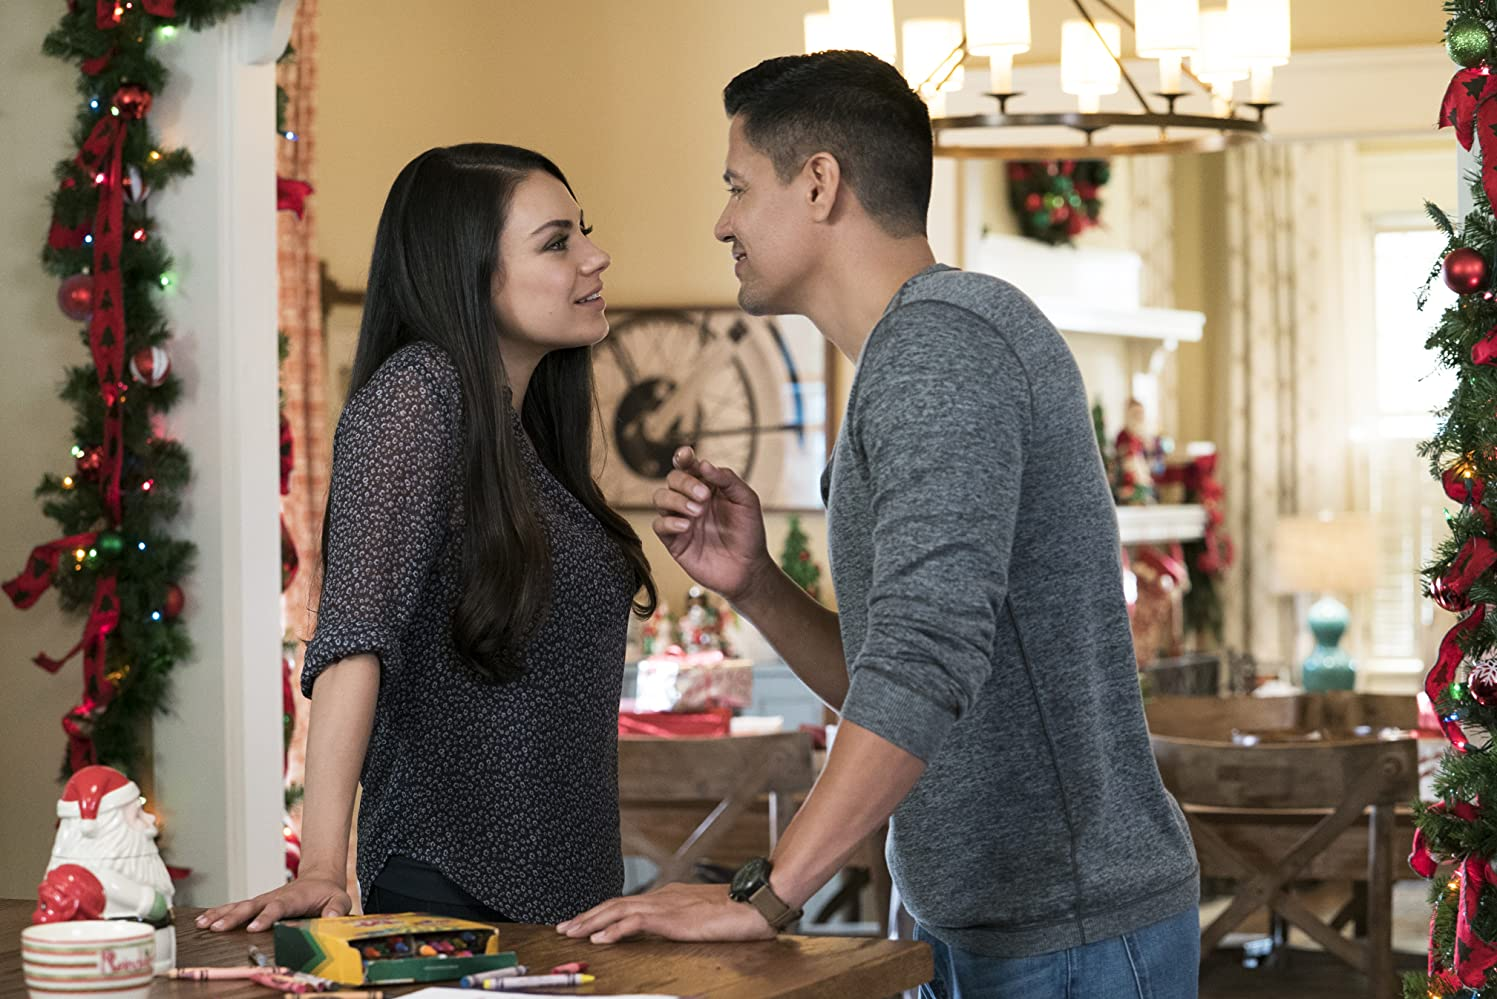 Mila Kunis and Jay Hernandez in A Bad Moms Christmas (2017)